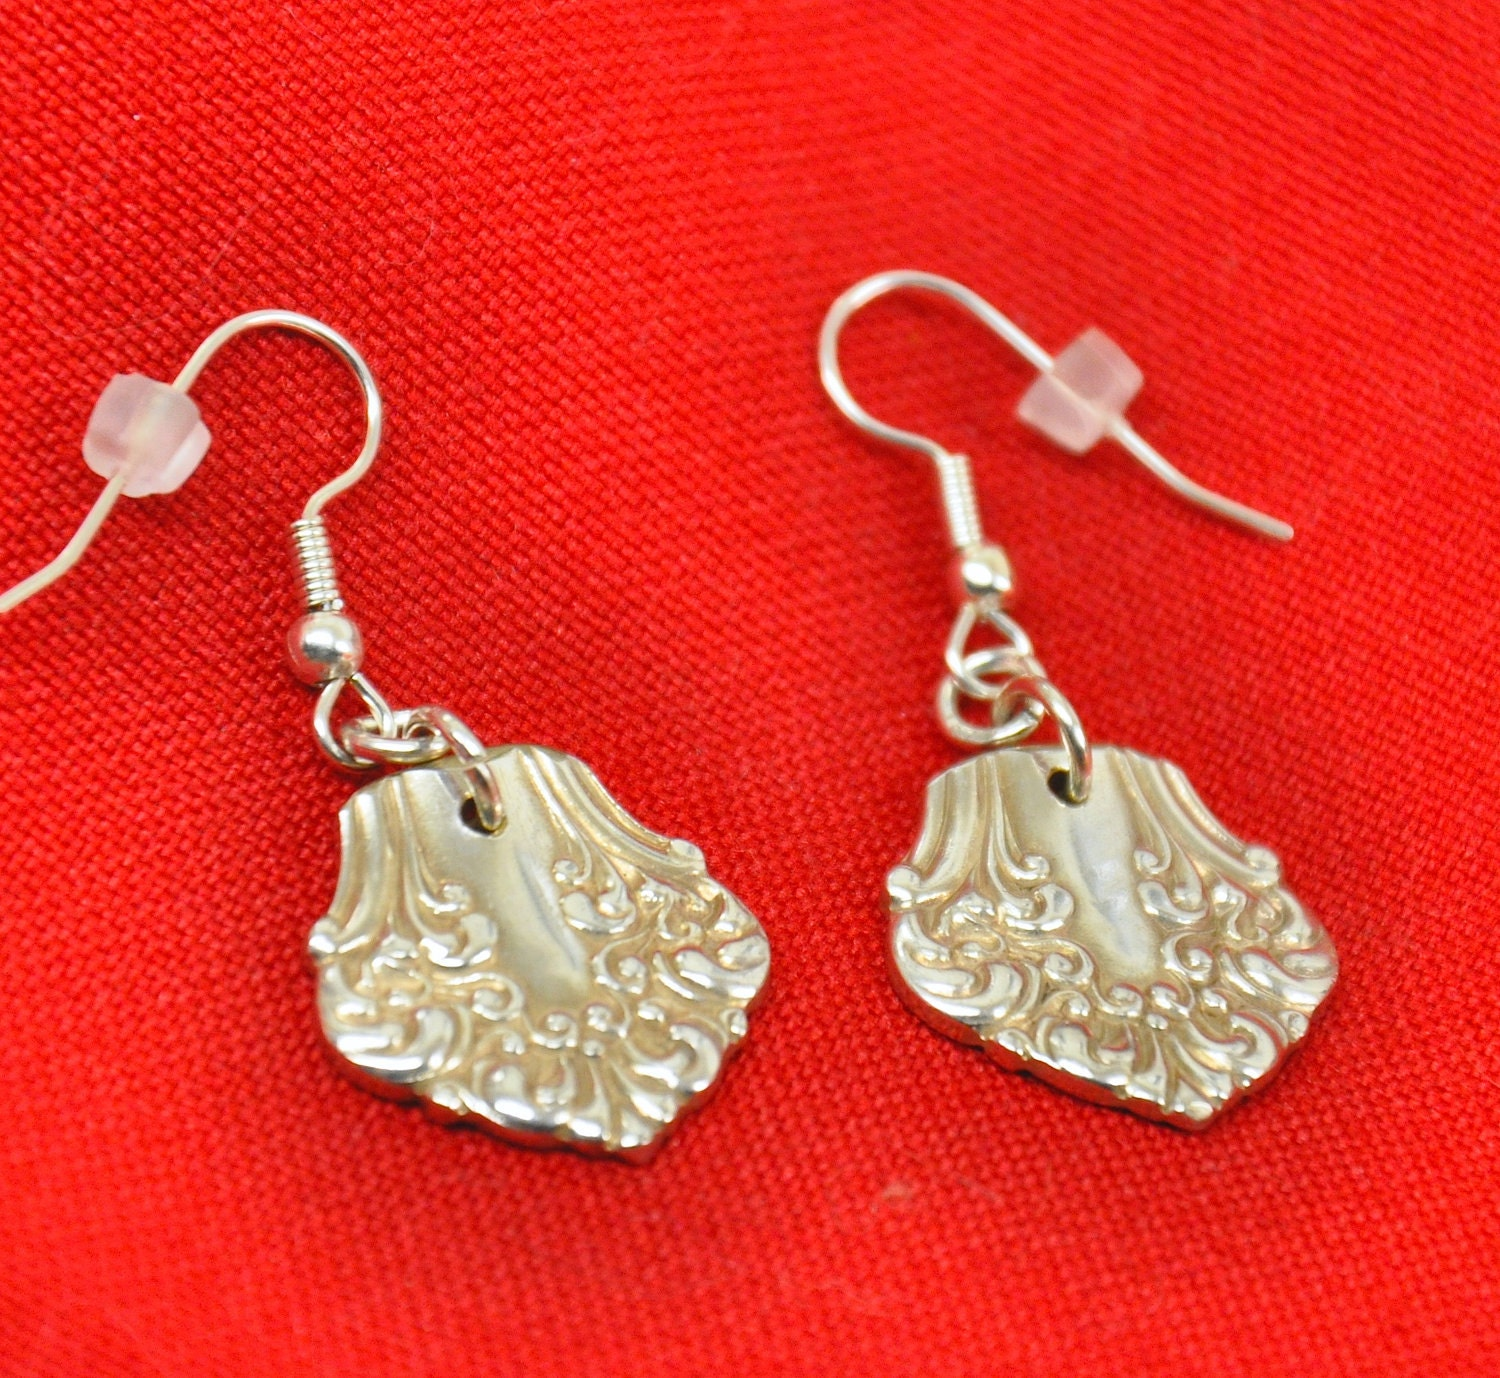 Spoon Earrings  Avon 1910